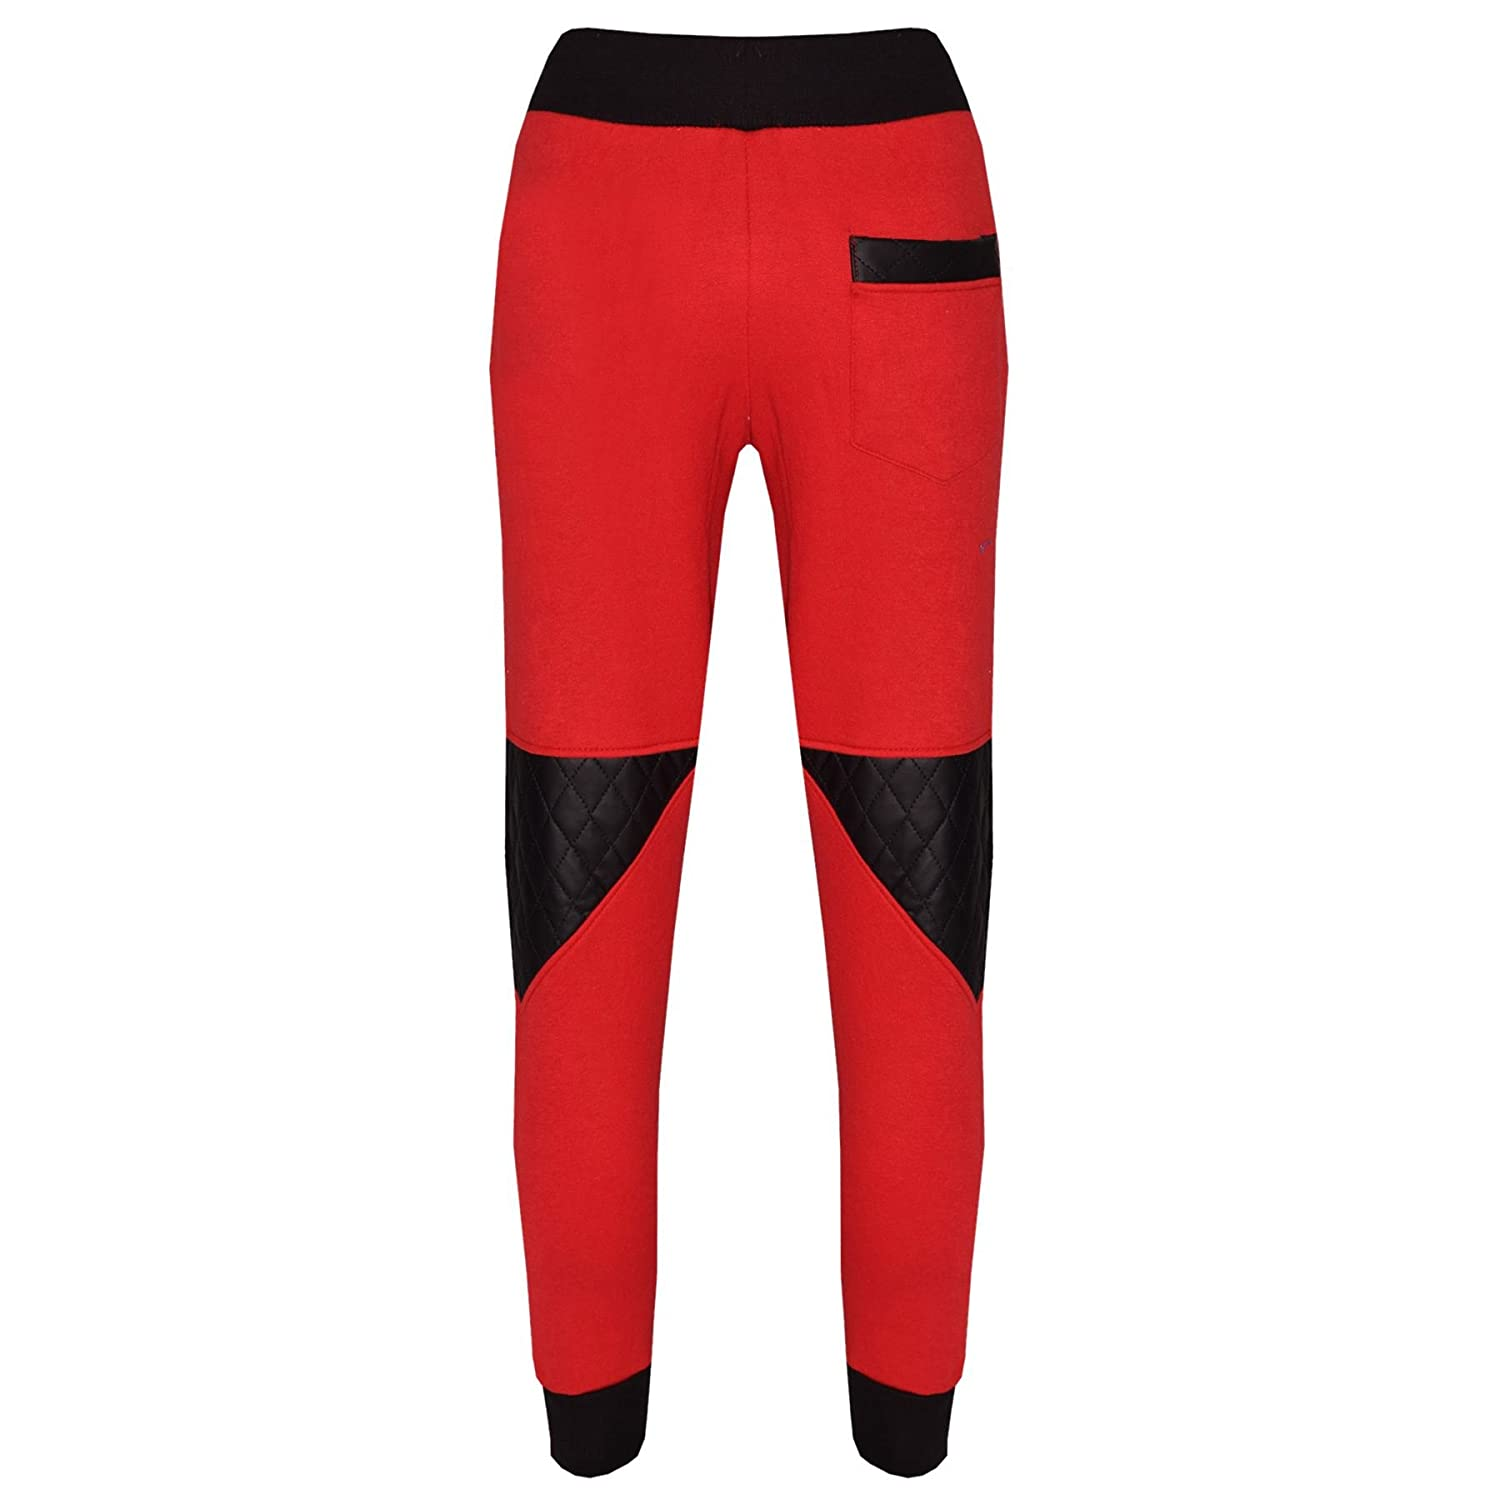 Kids Tracksuit Boys Girls Designers A2Z Project Zipped Top Bottom Jogging Suits